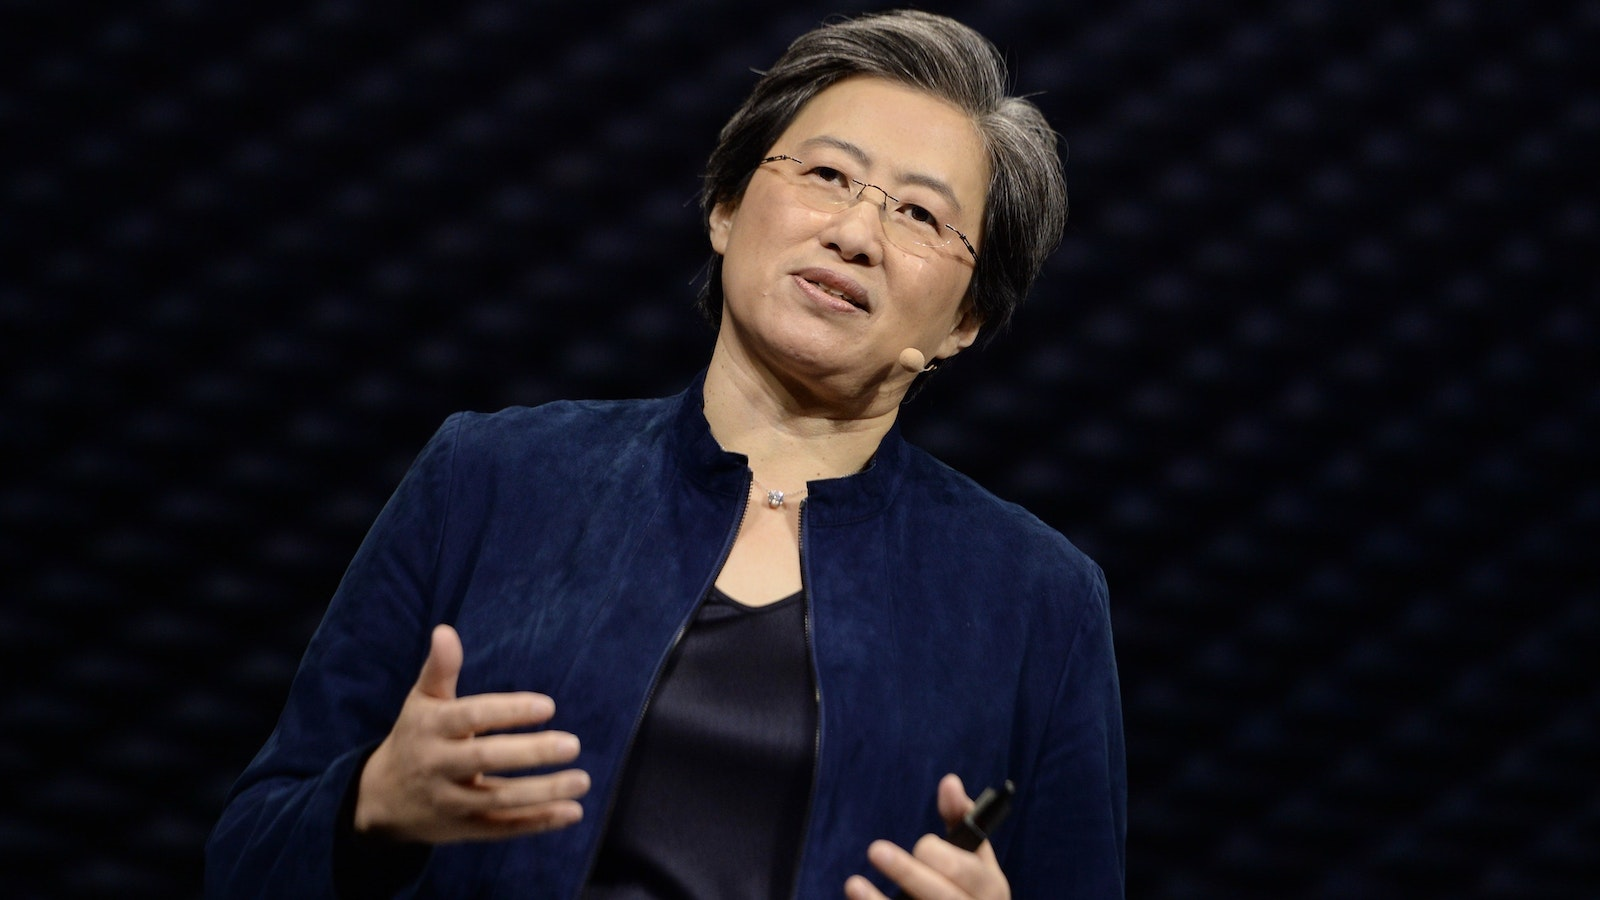 AMD CEO Lisa Su. Photo by Bloomberg